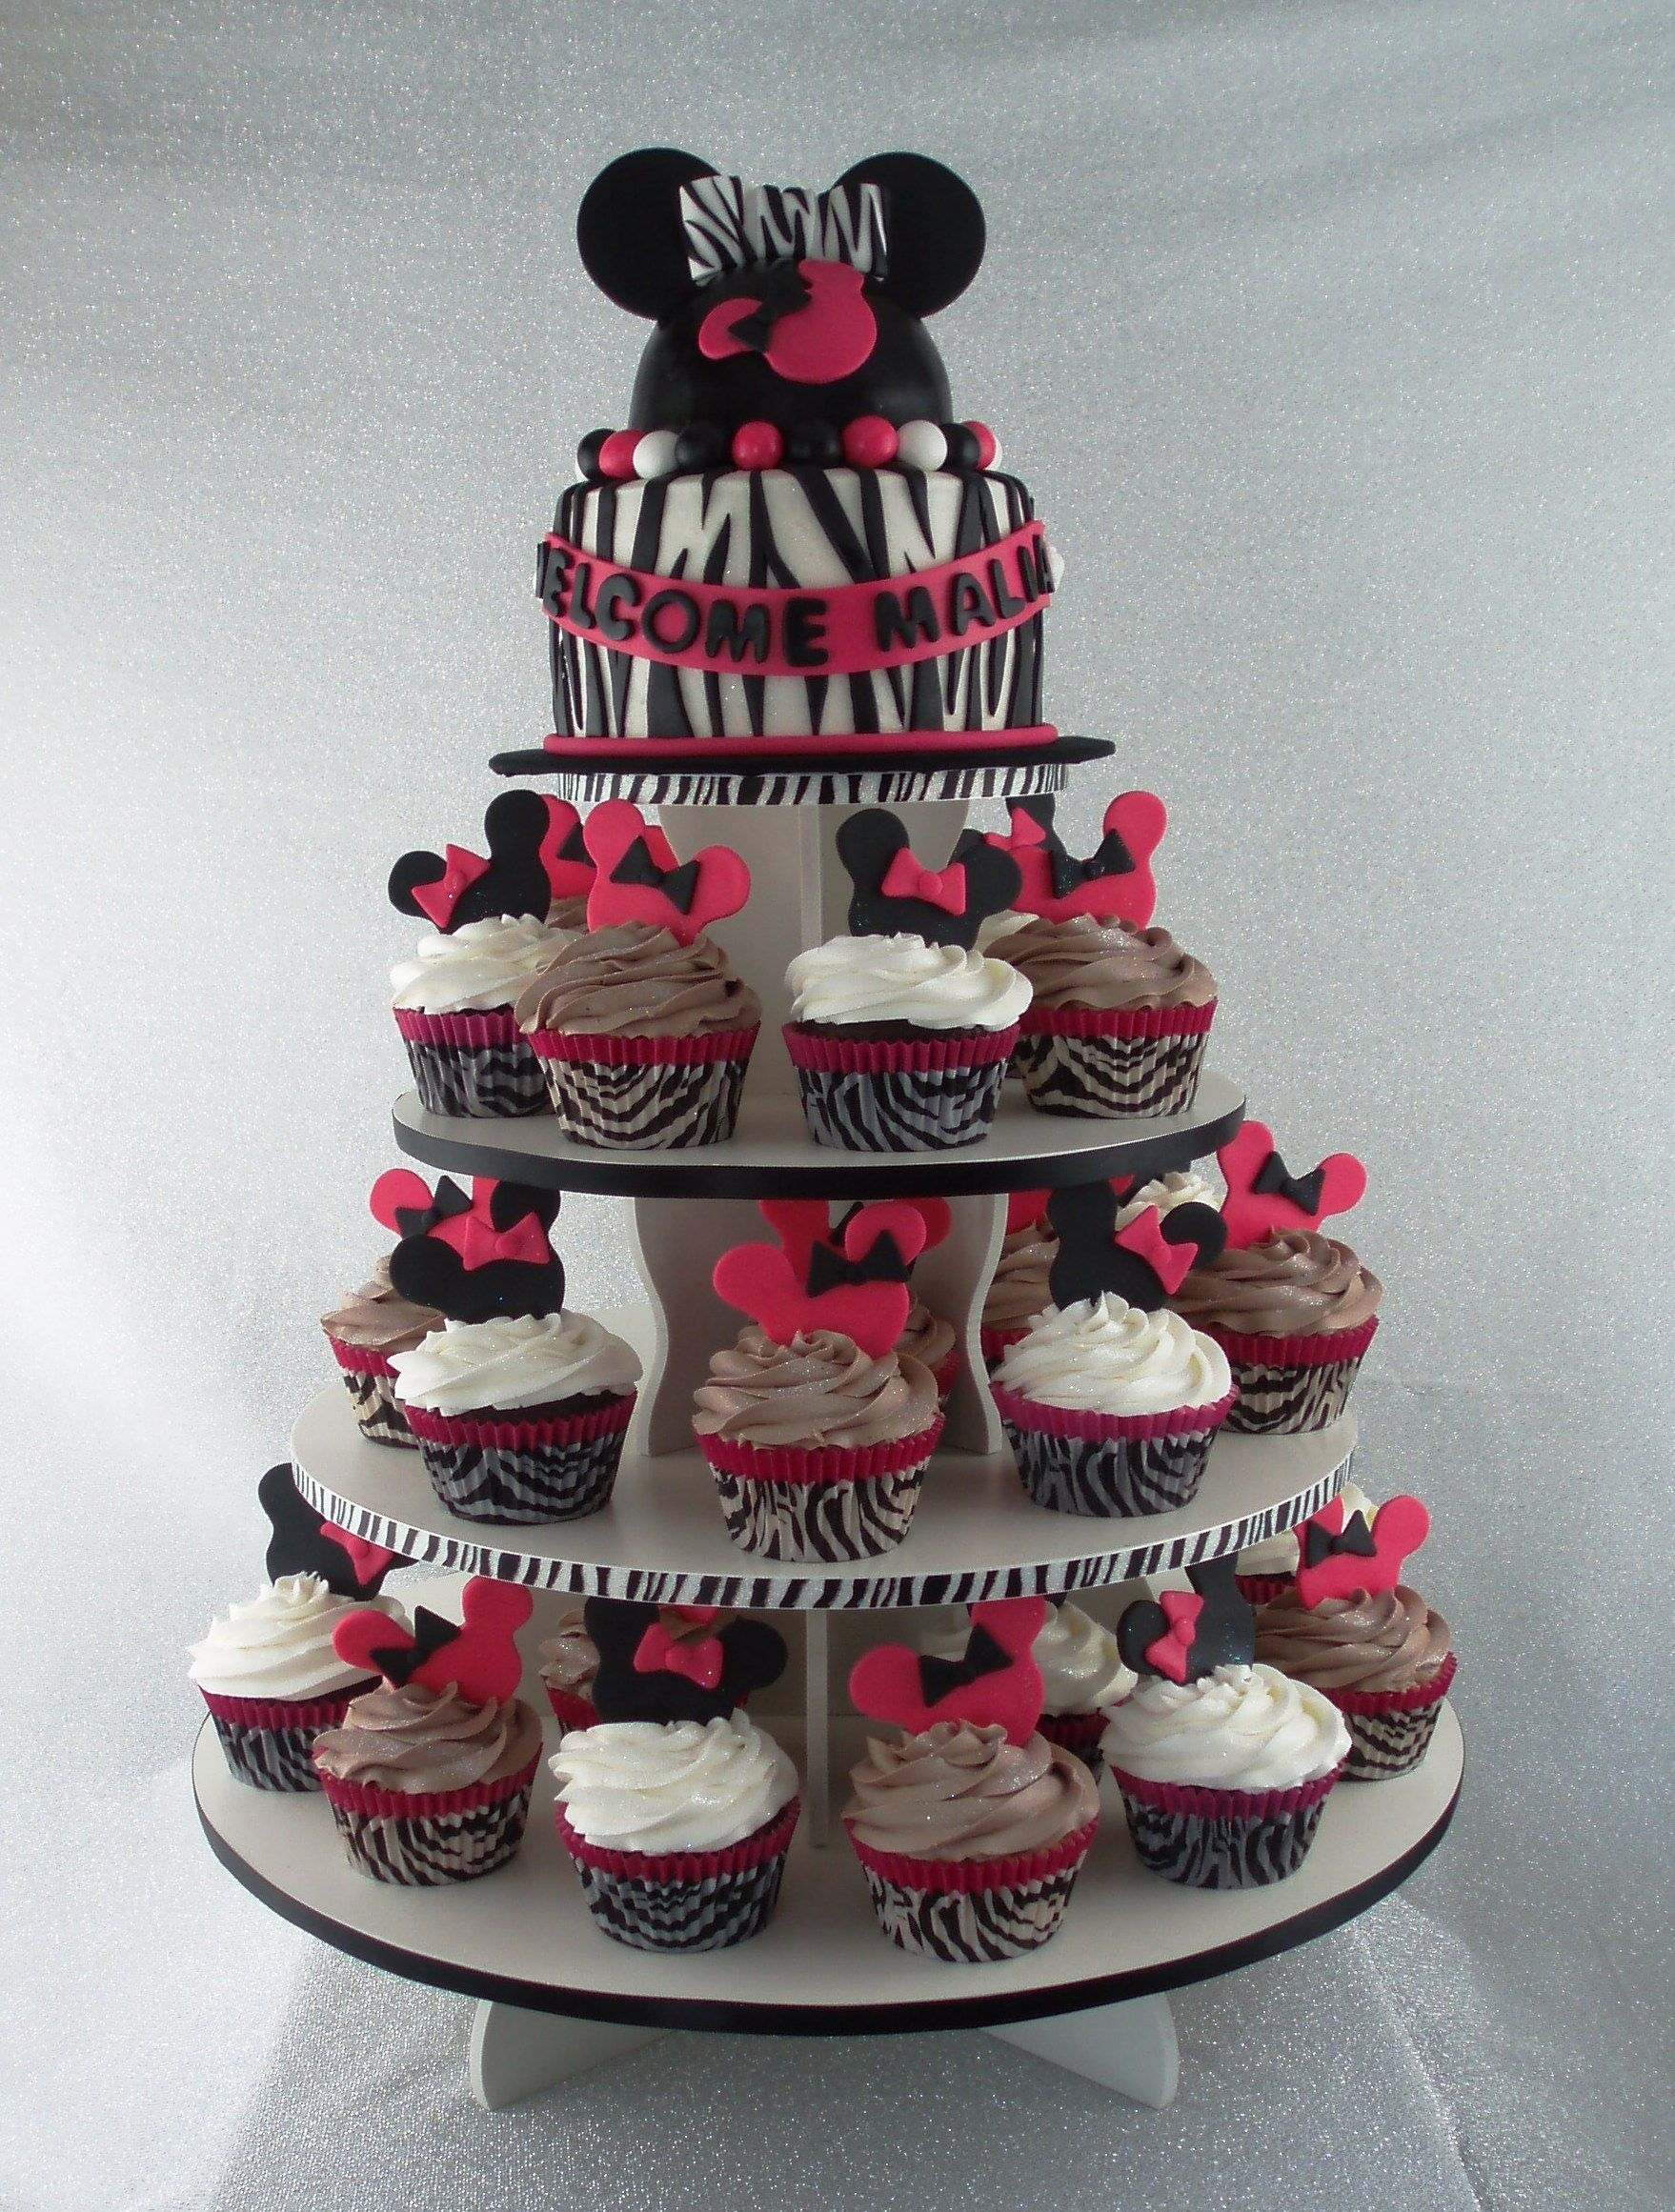 Minnie mouse baby shower cake all things baby for Baby minnie decoration ideas